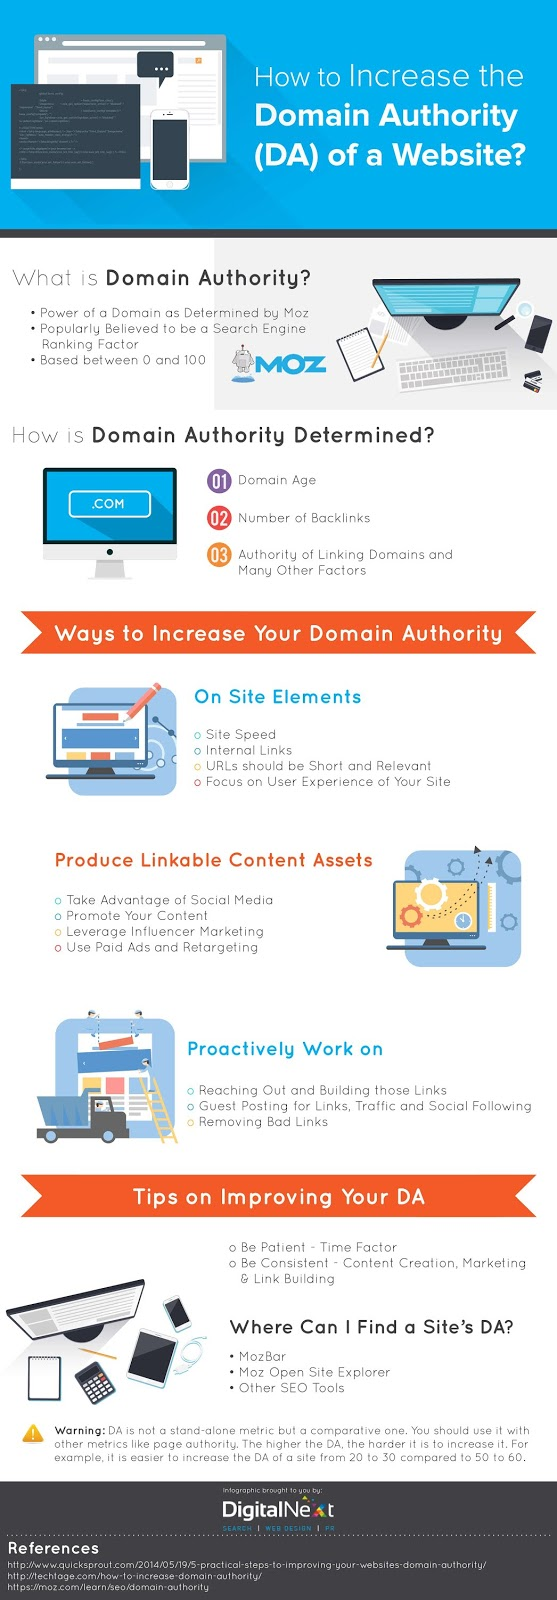 how to Increase domain authority for a website